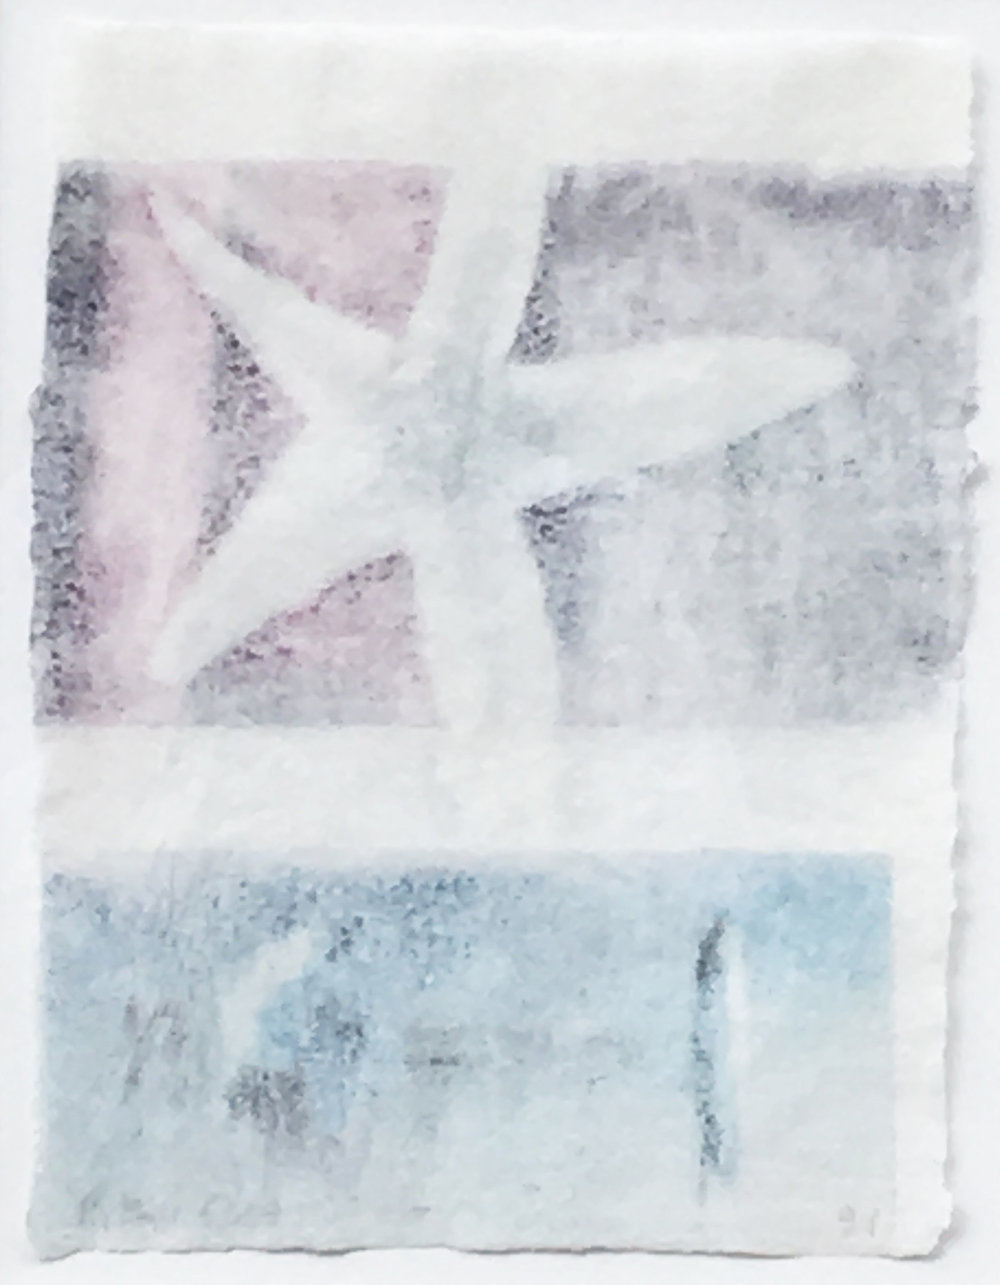 Robert Rauschenberg. Untitled (Starfish), 1991. 91D.015.